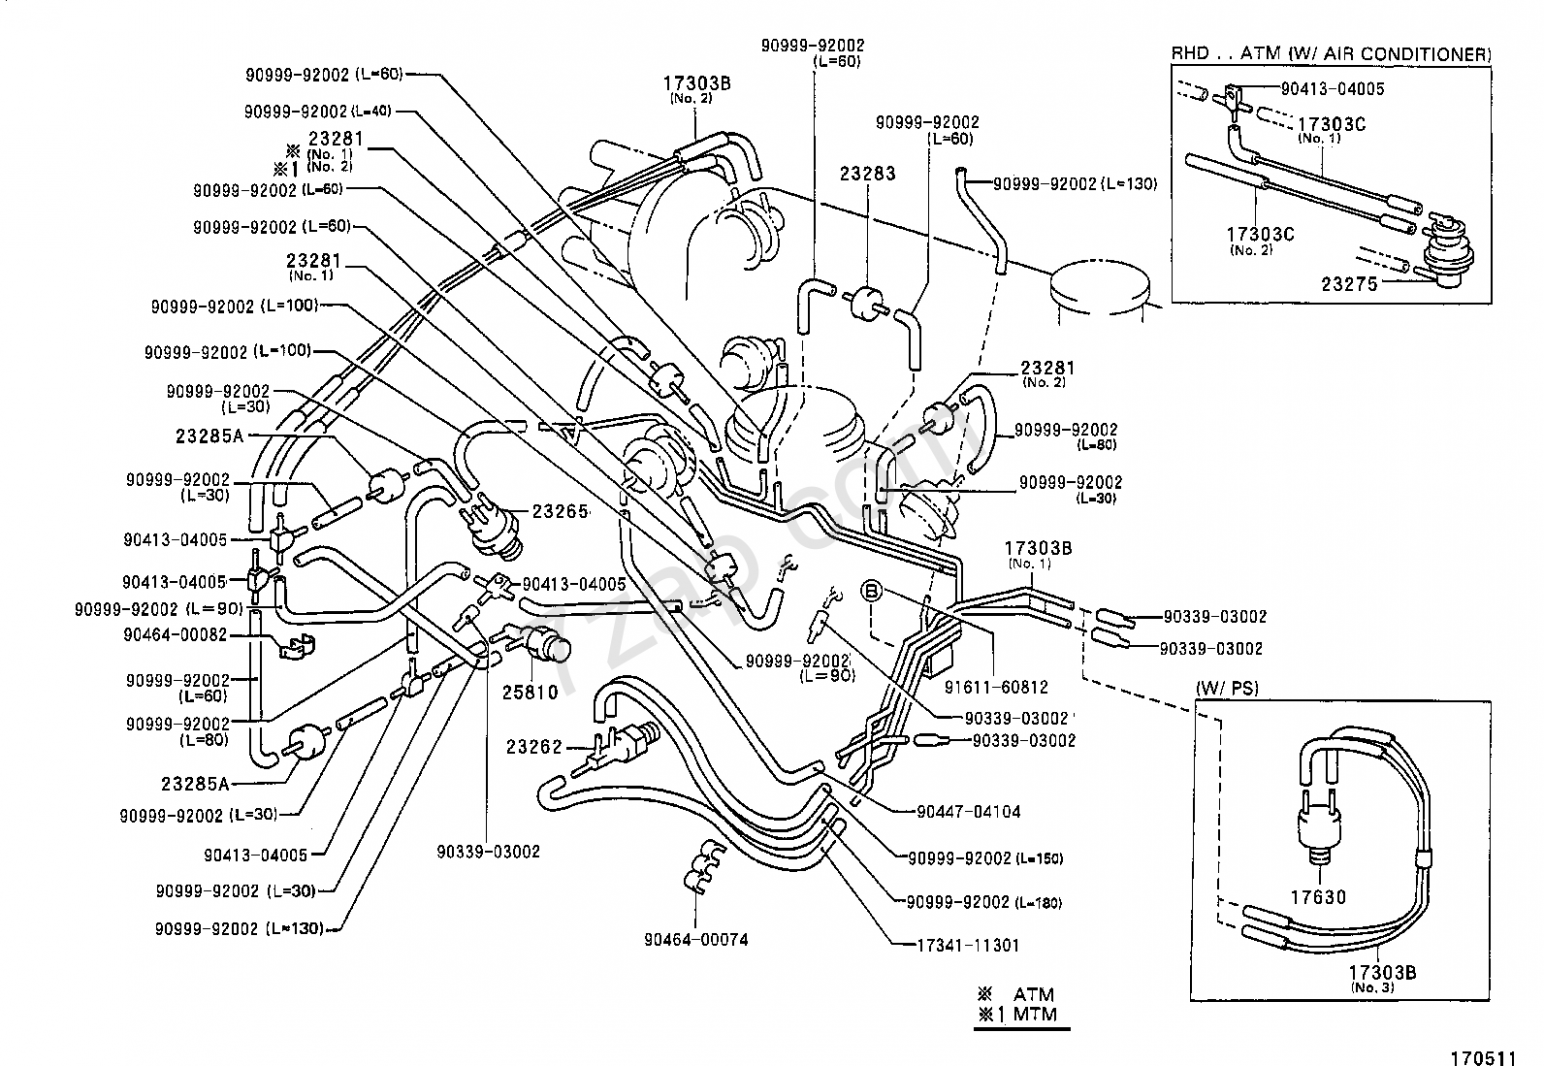 [DIAGRAM_1CA]  Toyota Corolla 7e Engine Vacuum Diagram di 2020 | Opel Vacuum Diagram |  | Pinterest